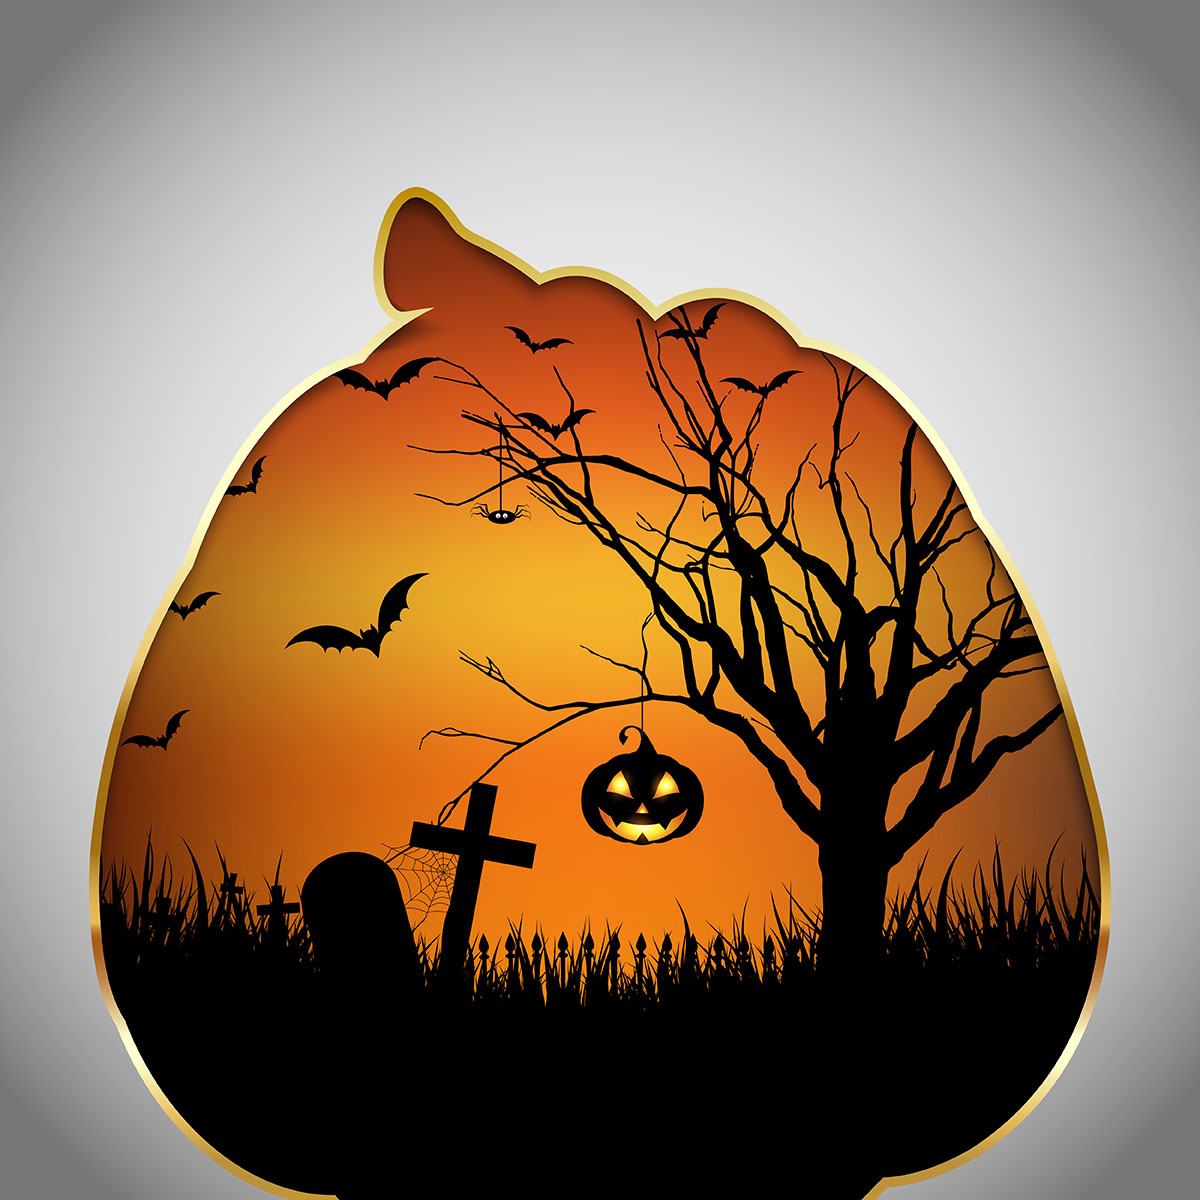 Halloween Background Pumpkin With Cut Out Shape